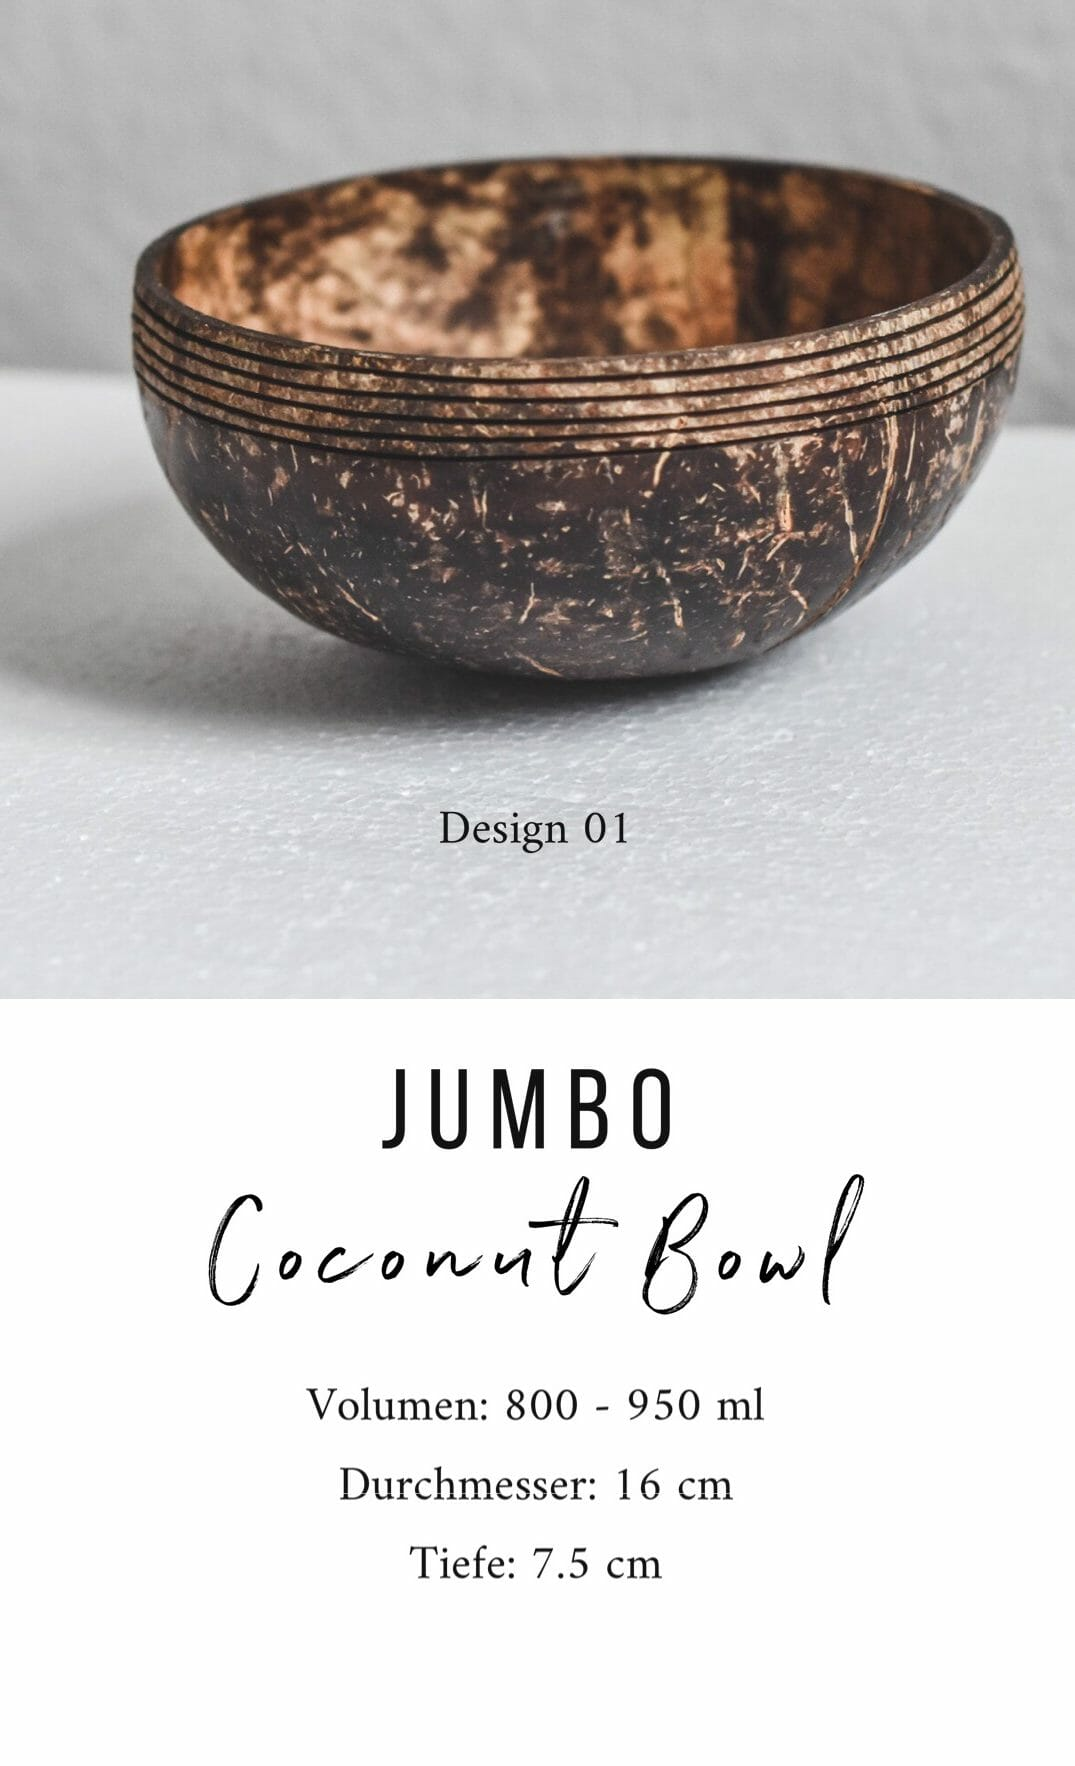 Jumbo Coconut Bowl Design 01